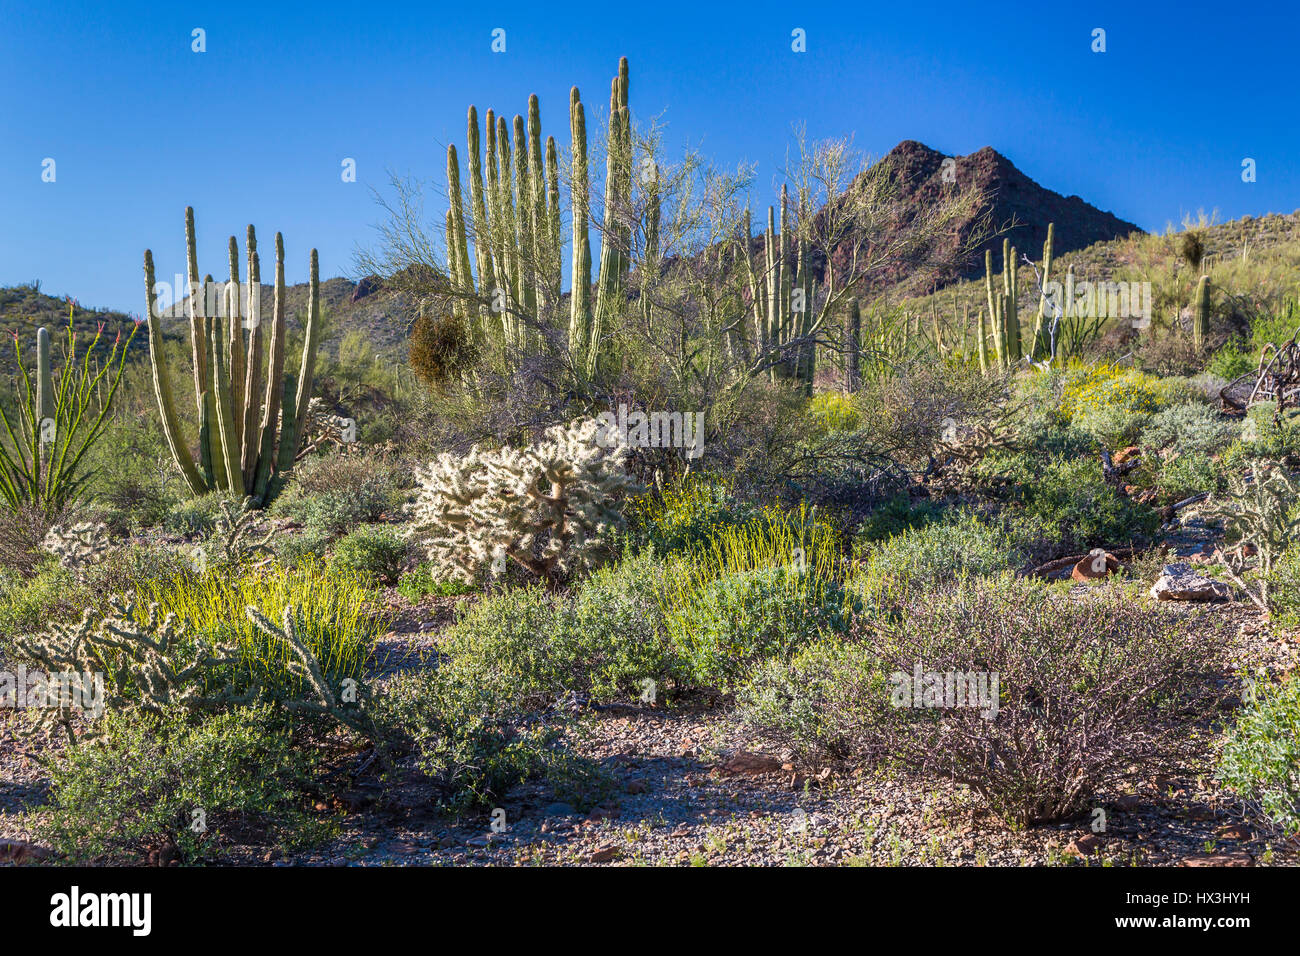 Desert vegetation of cactus in the Organ Pipe Cactus National Monument, Arizona, USA. - Stock Image